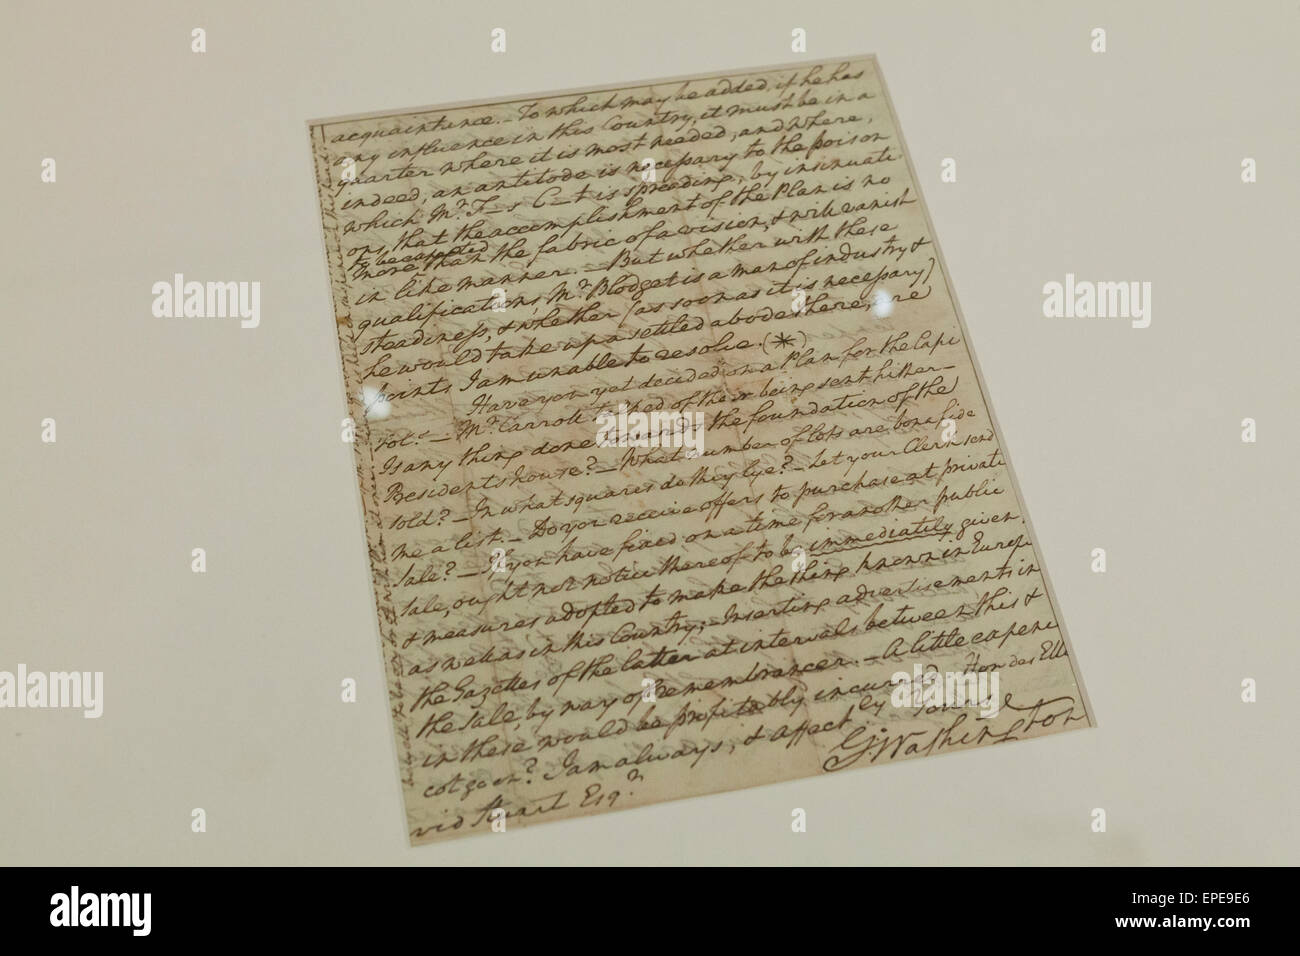 Hand written letter from George Washington, circa 1791 - USA - Stock Image